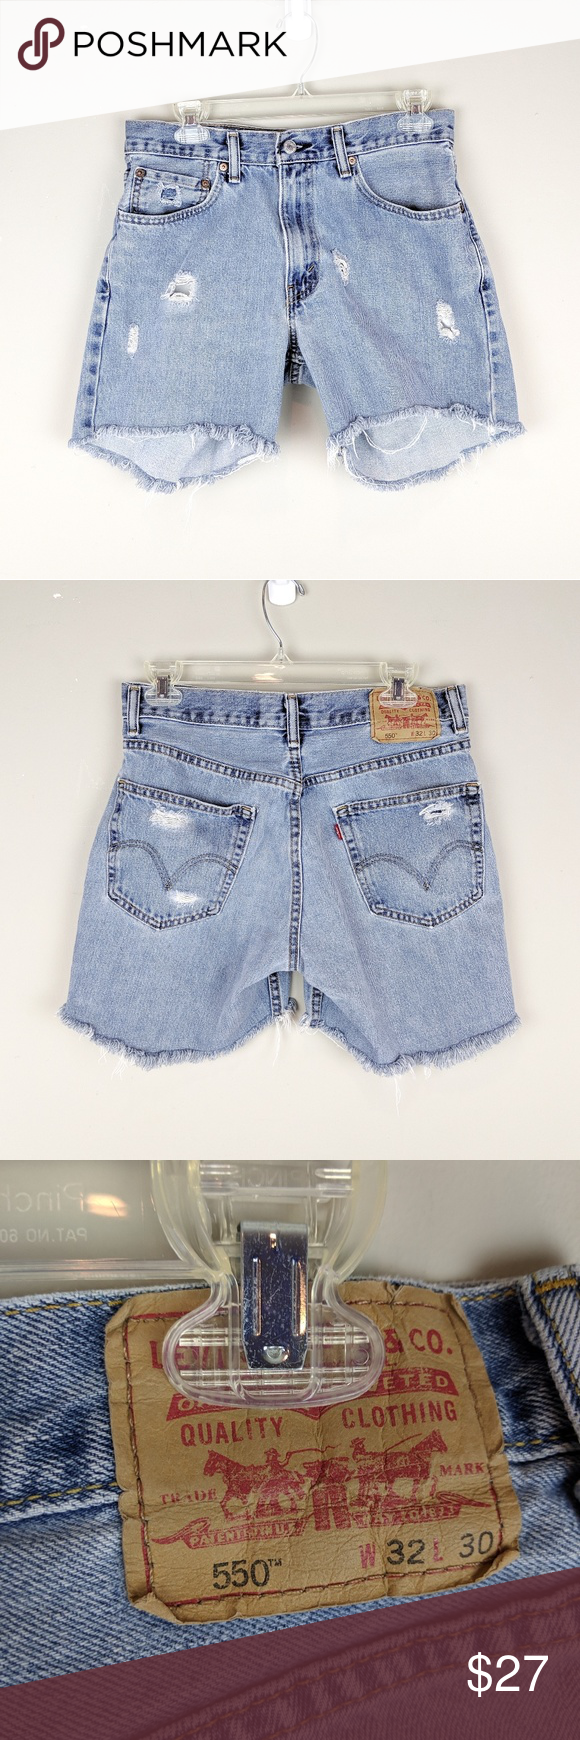 Levi's | Distressed Denim Cutoff Shorts Cute lighter wash denim cutoff shorts with distressed detailing. Size 32 x 30 relaxed fit. Good used condition !! Levi's Shorts #denimcutoffshorts Levi's | Distressed Denim Cutoff Shorts Cute lighter wash denim cutoff shorts with distressed detailing. Size 32 x 30 relaxed fit. Good used condition !! Levi's Shorts #denimcutoffshorts Levi's | Distressed Denim Cutoff Shorts Cute lighter wash denim cutoff shorts with distressed detailing. Size 32 x 30 relaxed #denimcutoffshorts